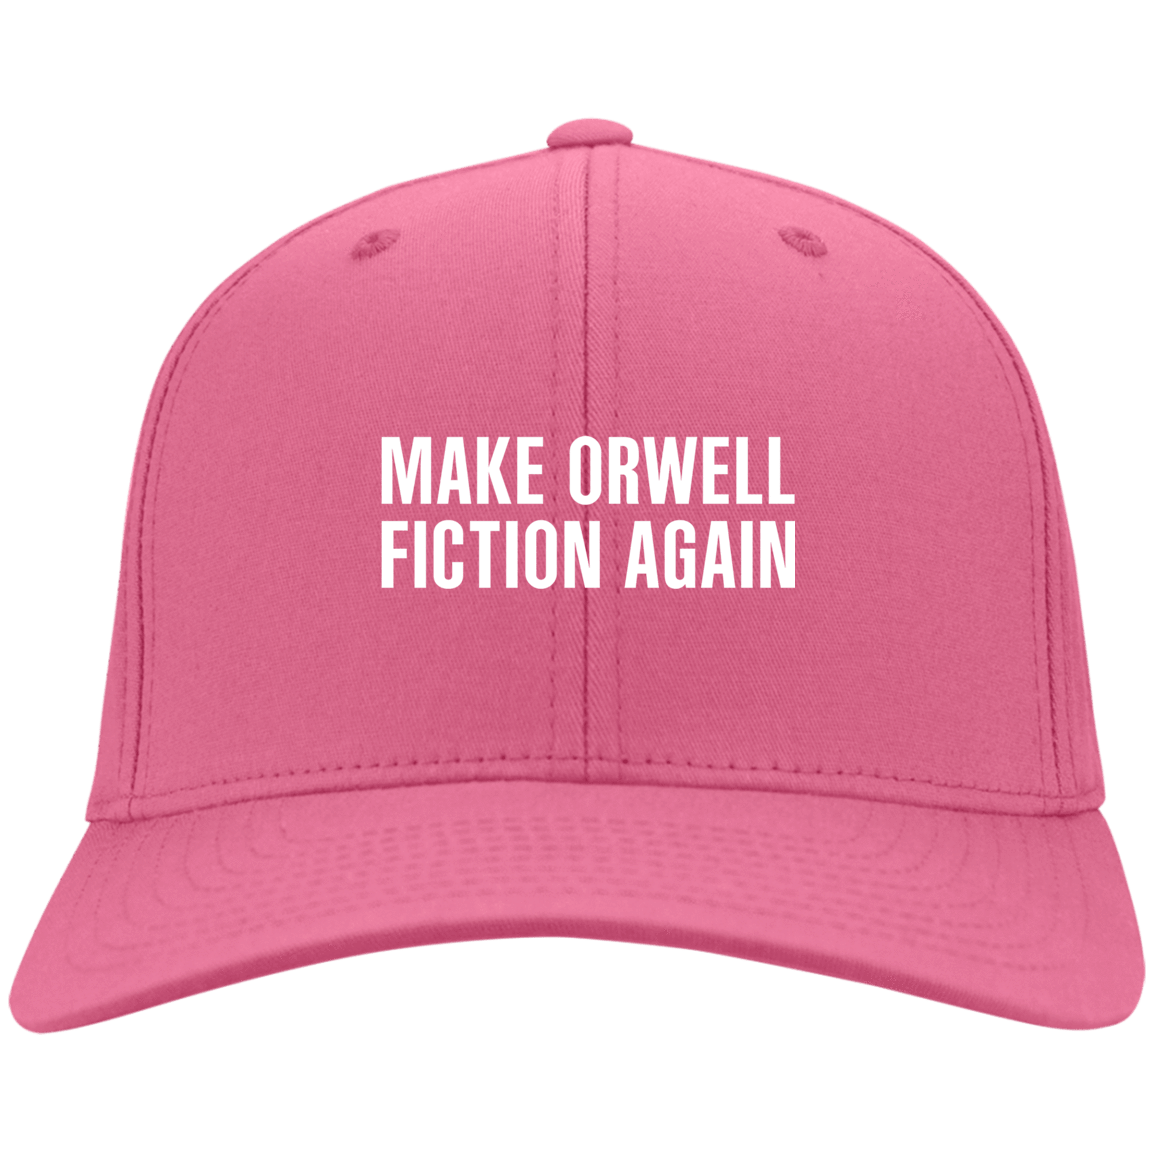 Make Orwell Fiction Again Hat 10-9381-74169573-45472 - Tee Ript